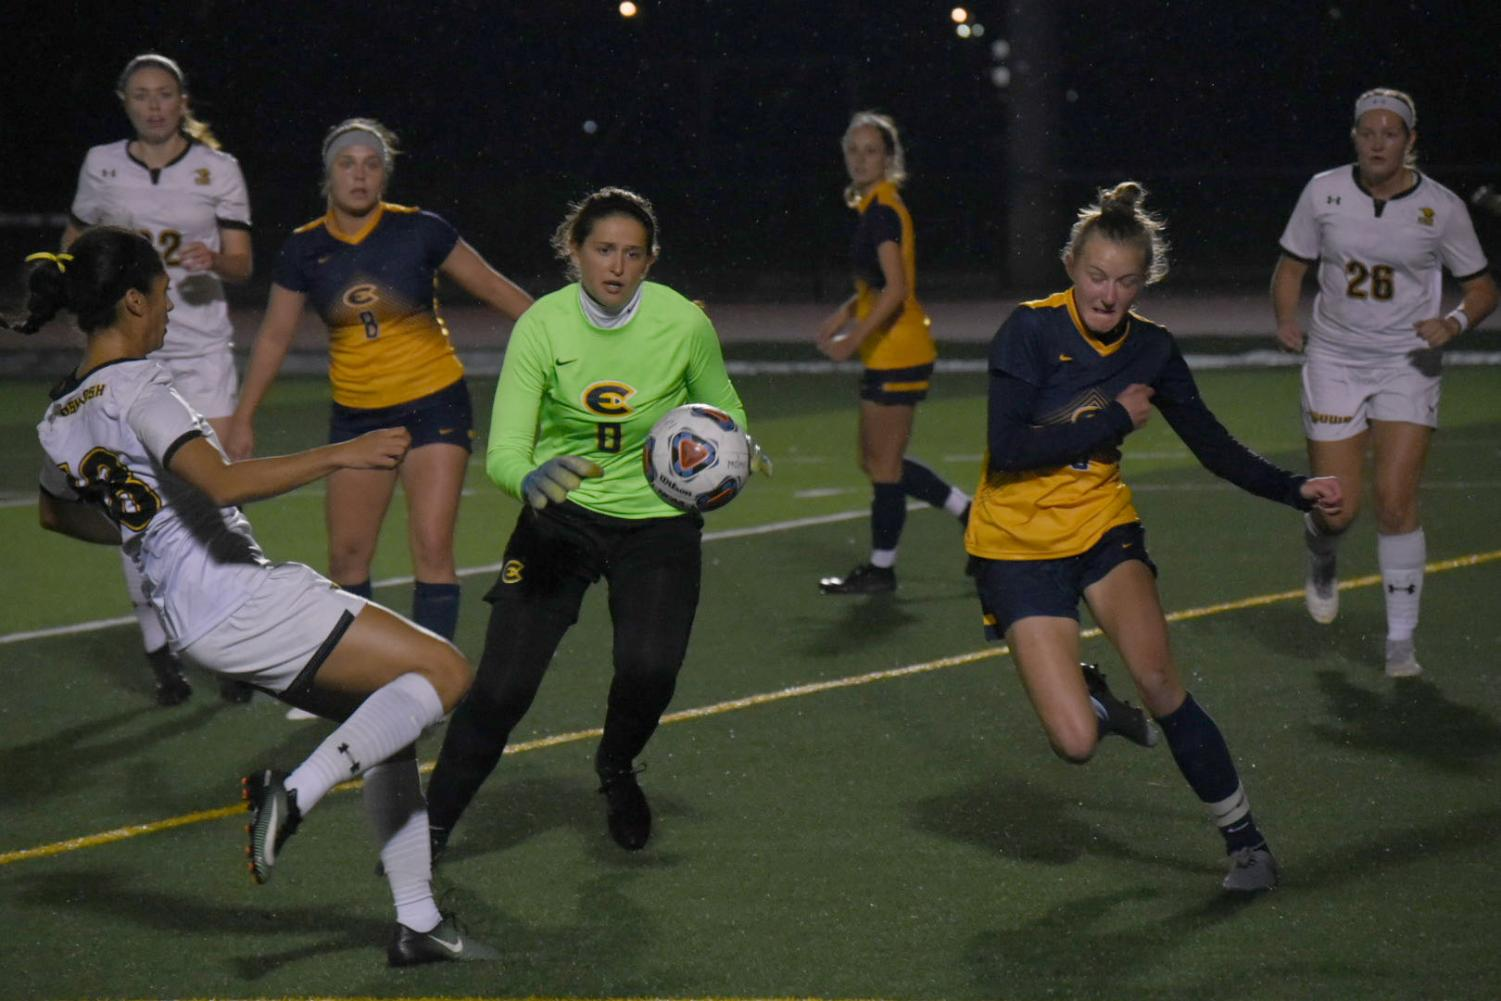 Senior Madison Smith approaches UW-Eau Claire defenders while two of her teammates look on.